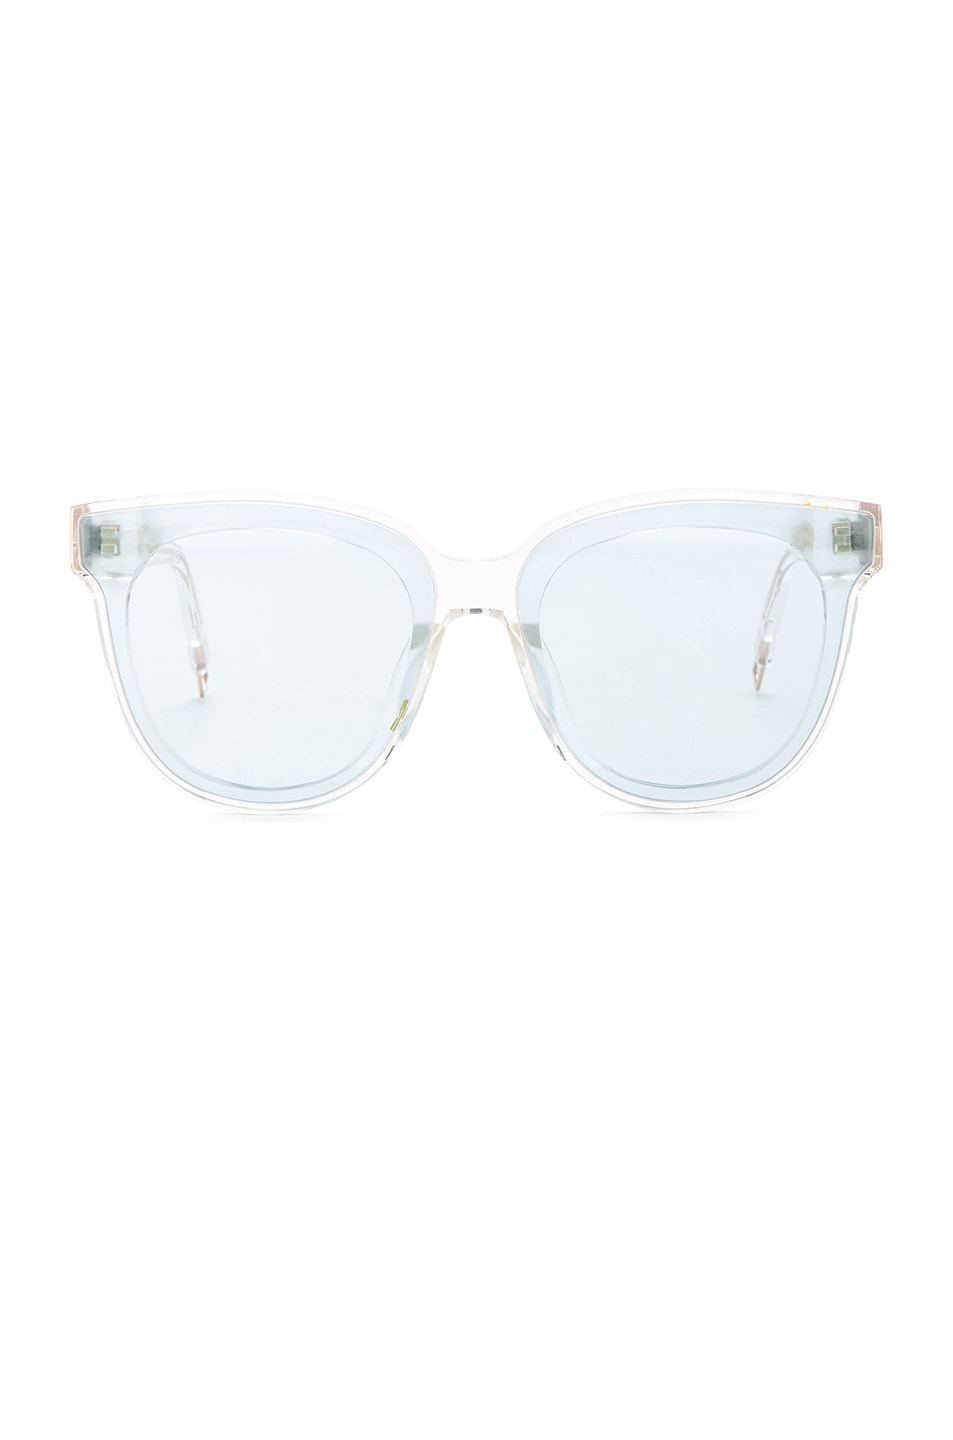 Image 1 of Gentle Monster In Scarlet Sunglasses in Clear Light Blue Acetate & Clear Light Blue